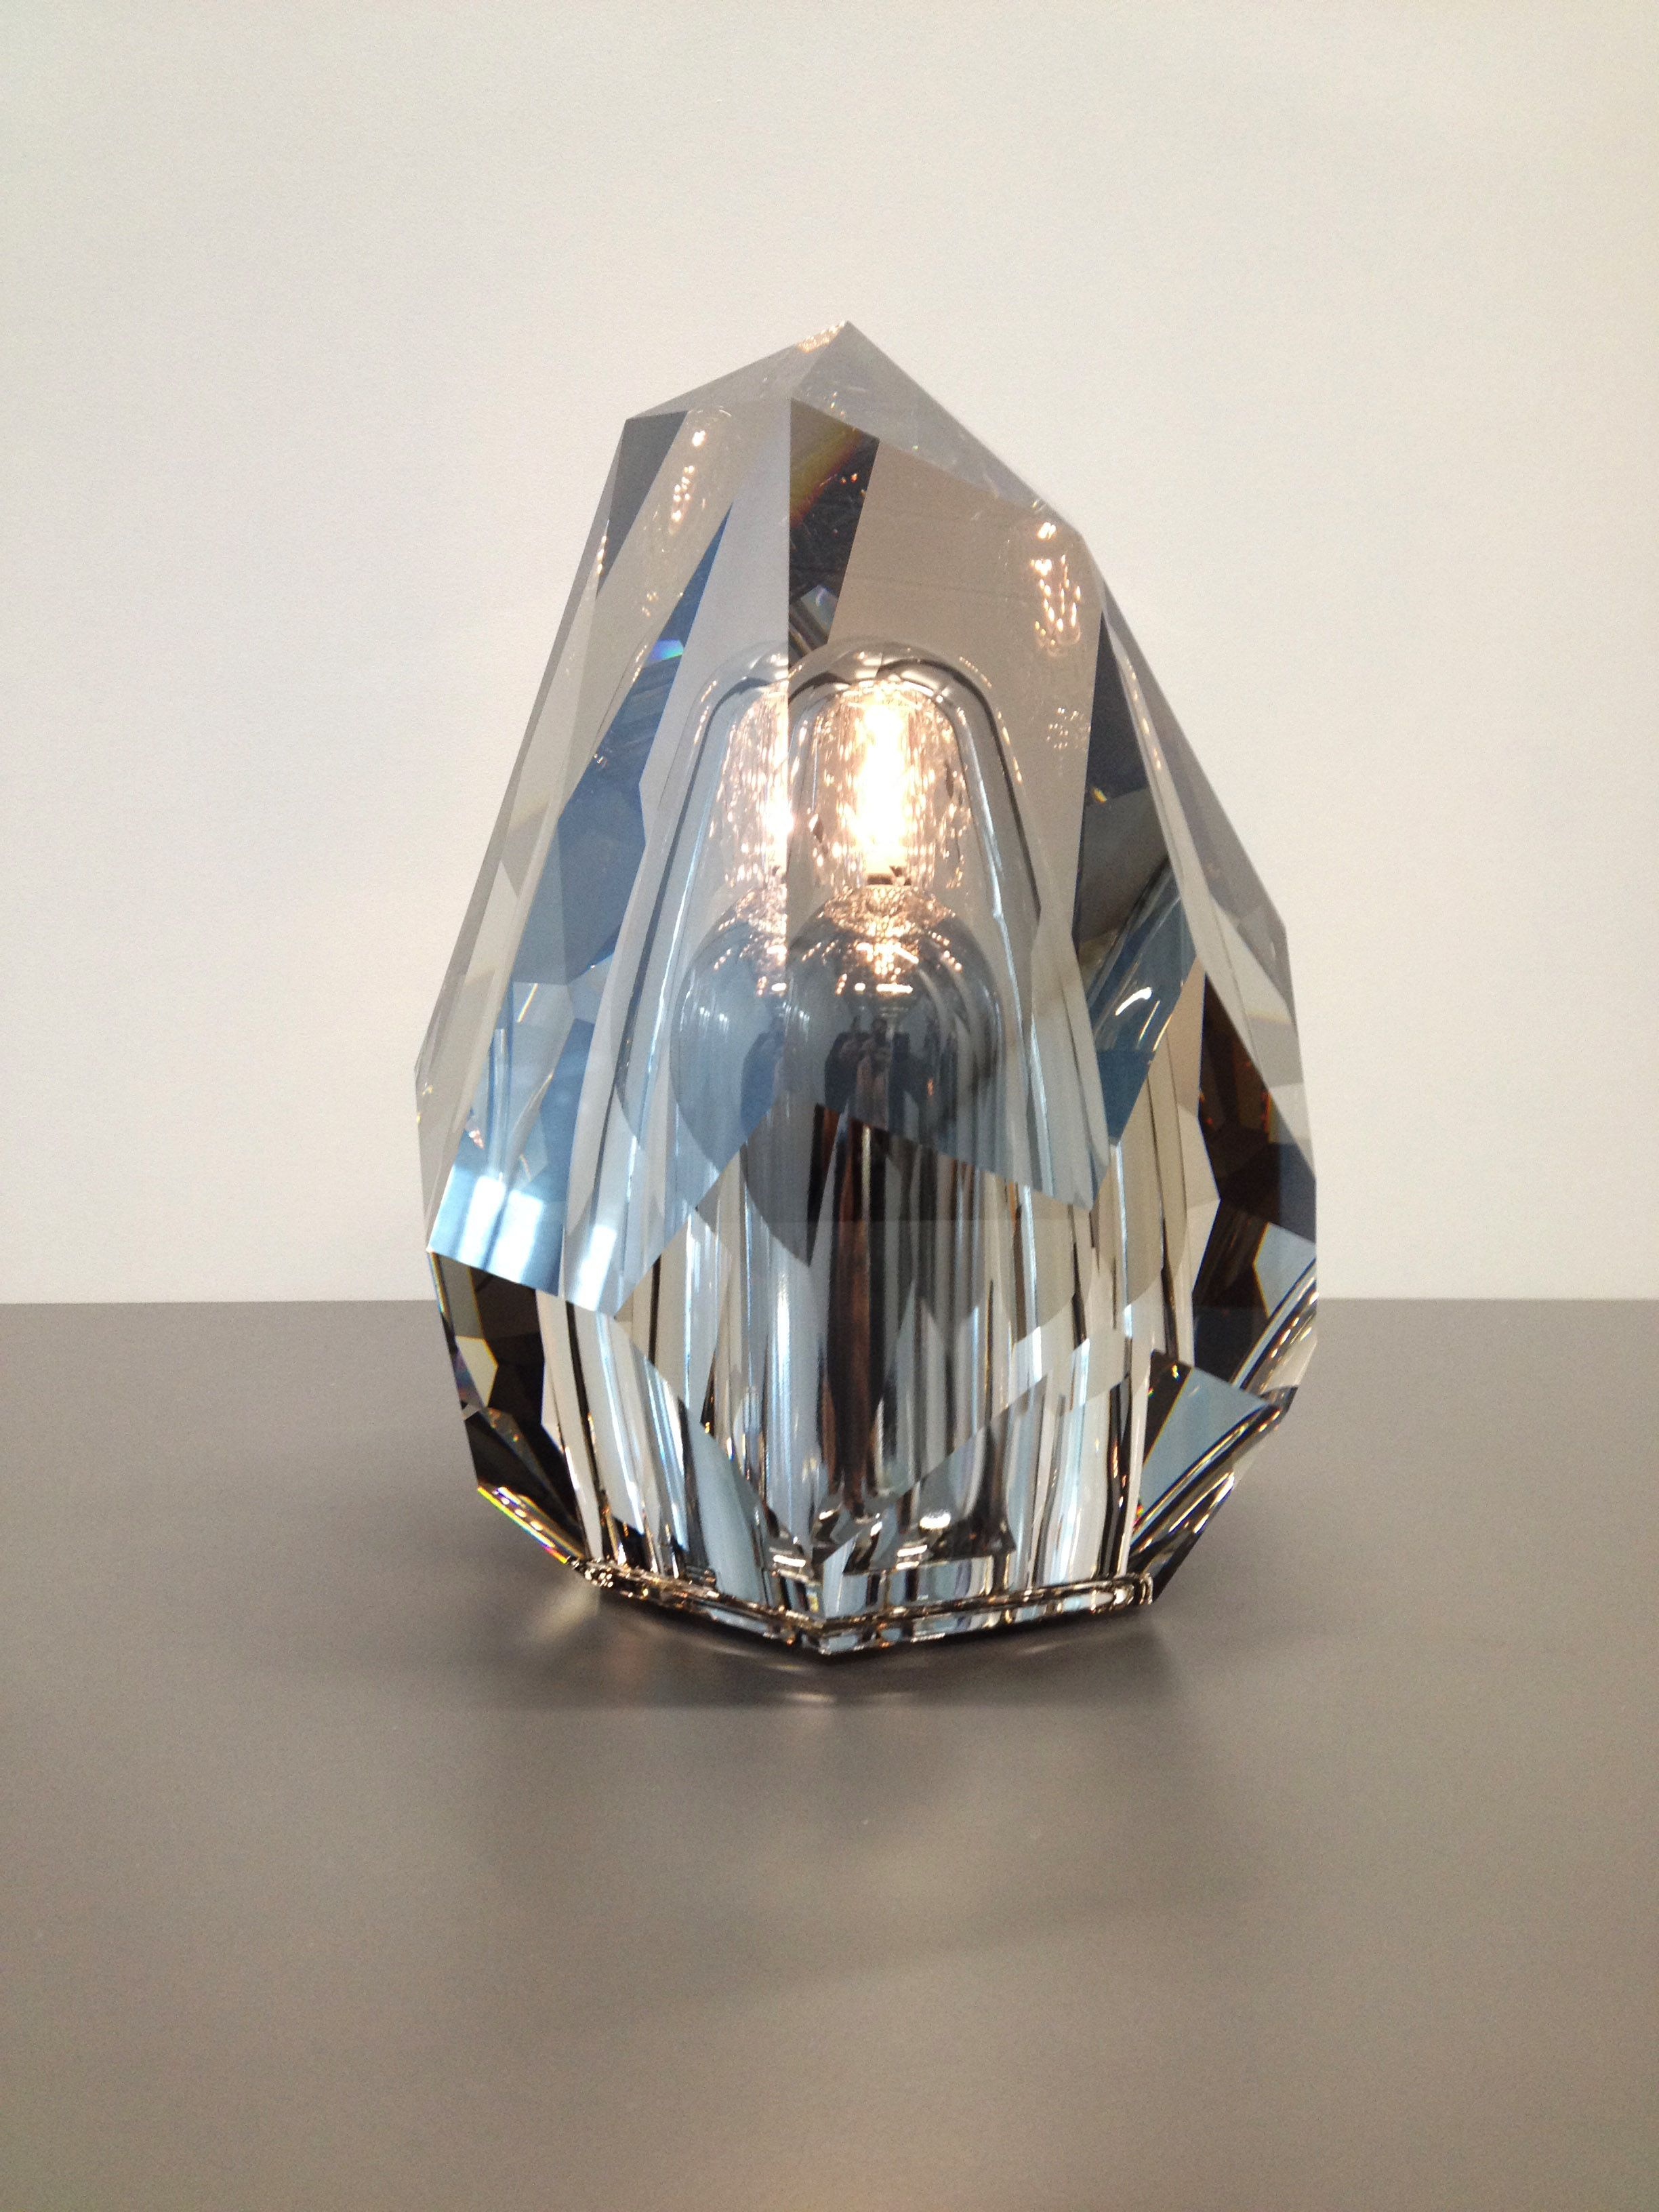 Www Neoz Com Neoz Cordless Lamp neoz cordless table lamp collaboration with crystals from